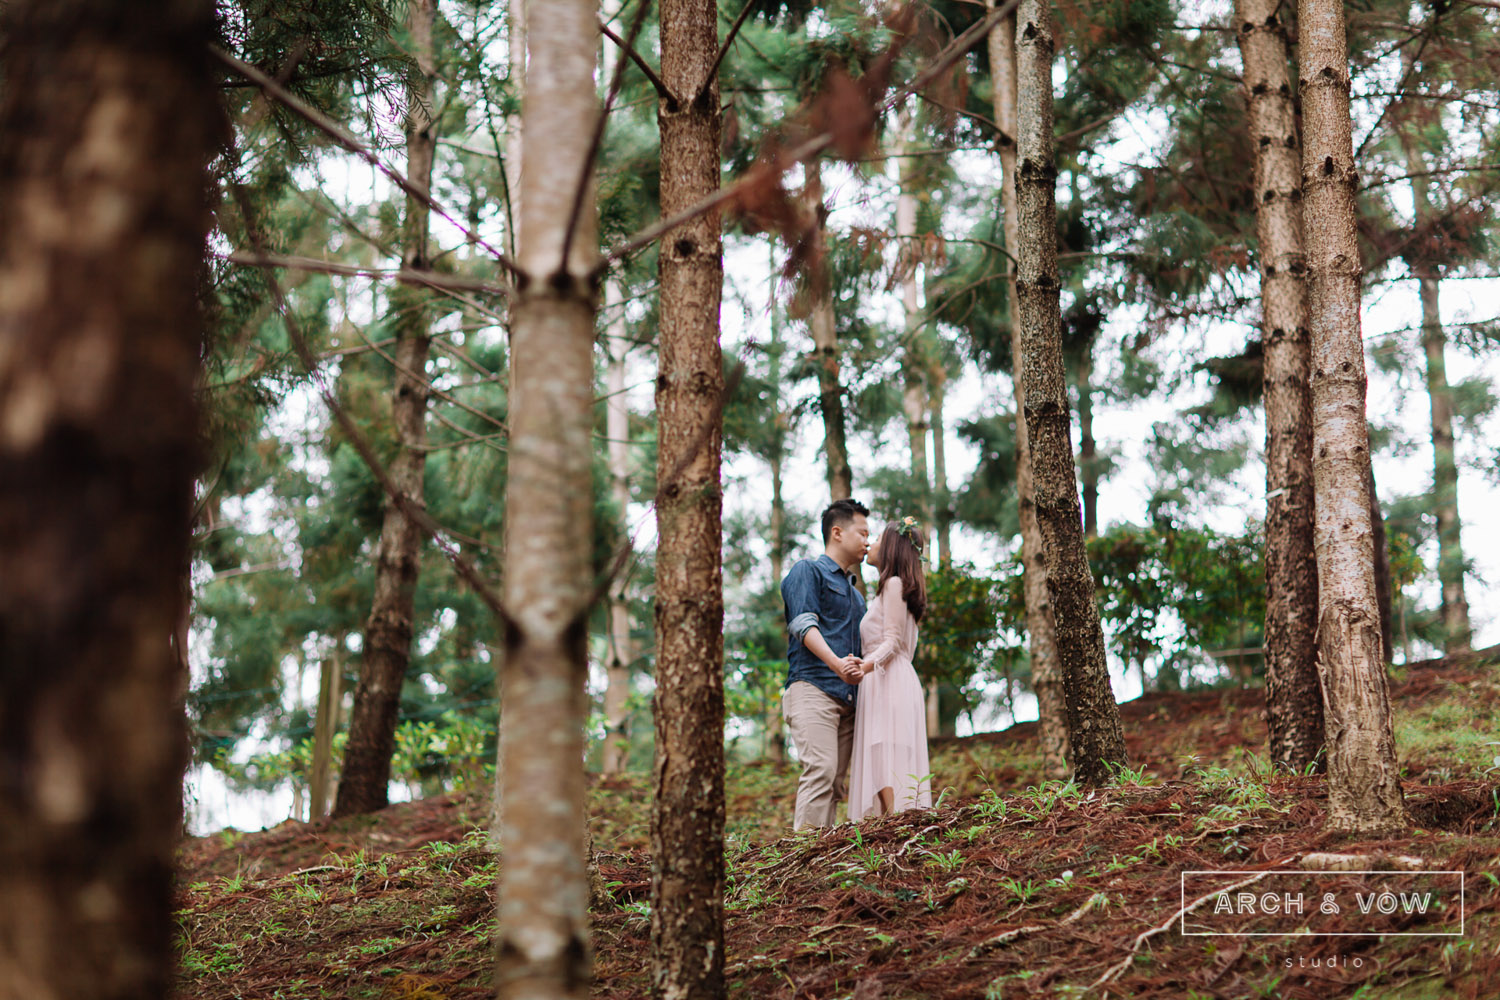 KC & Elly Prewed watermark-130.jpg